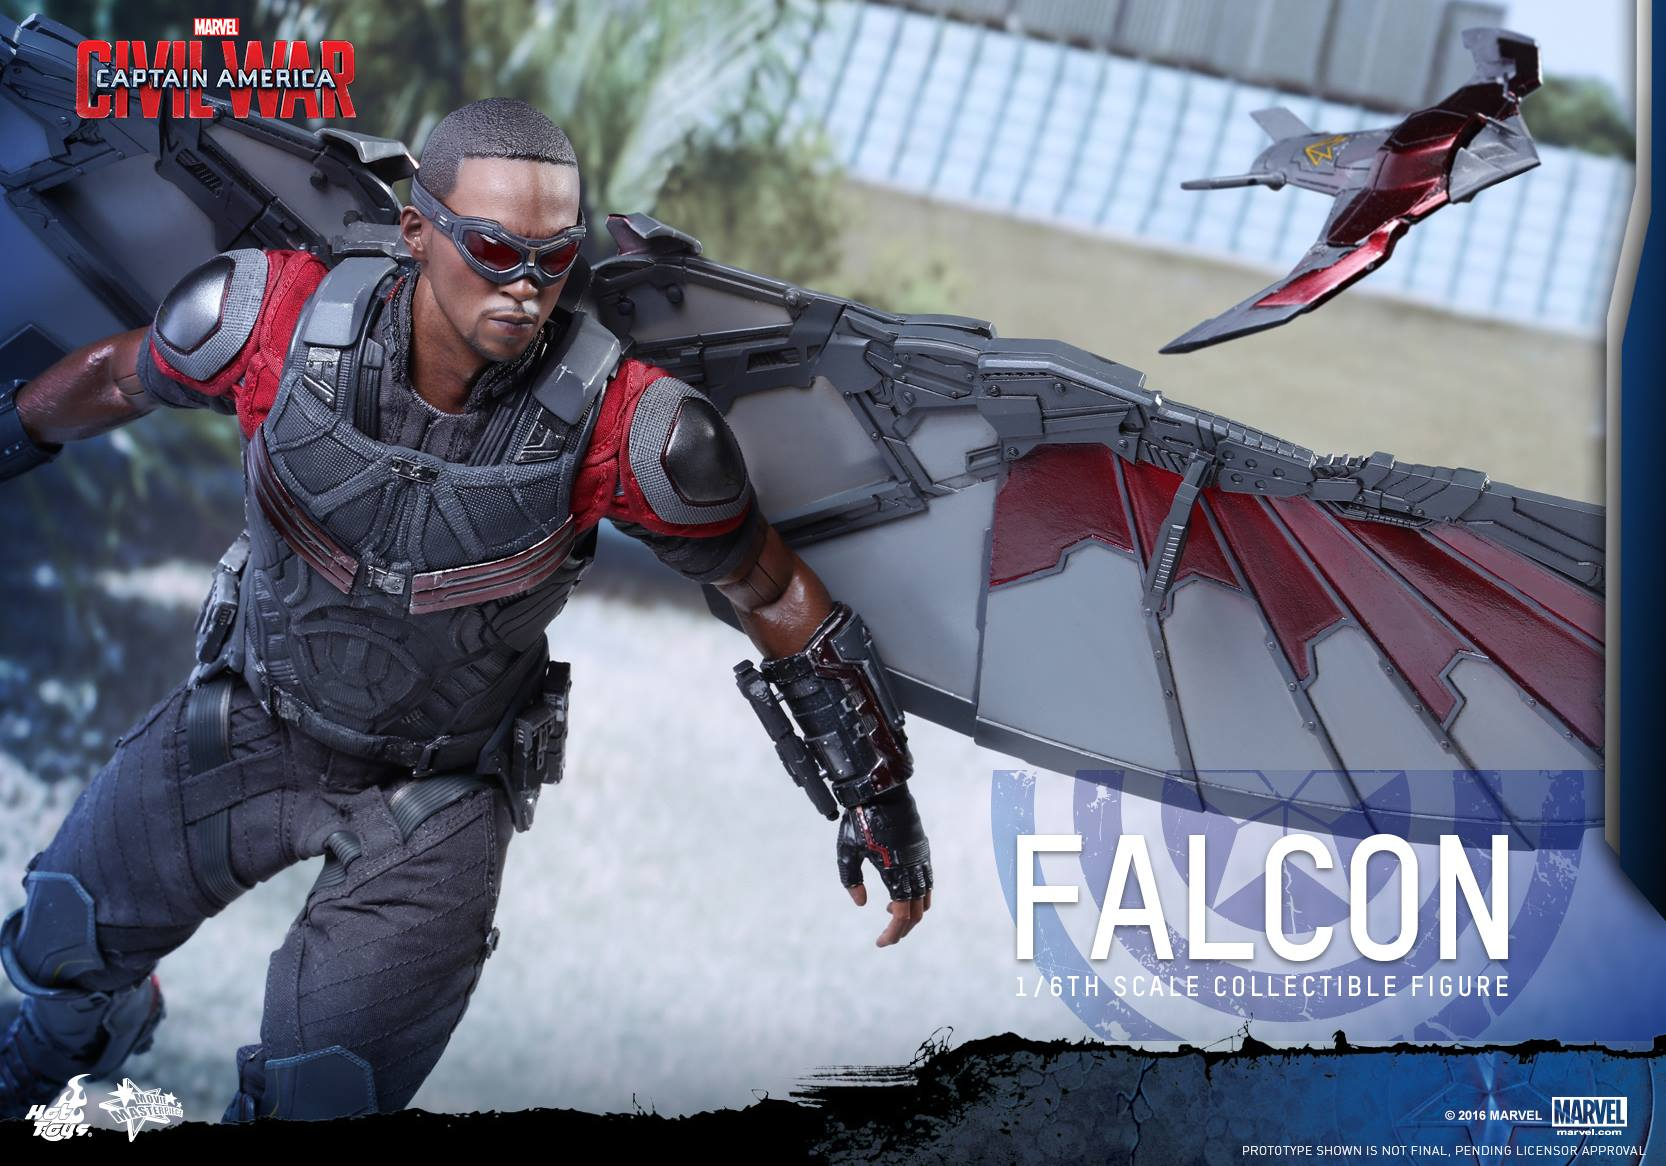 Learn How To Draw Falcon From Captain America Civil War: Hot Toys Civil War Falcon Figure Photos & Order Info